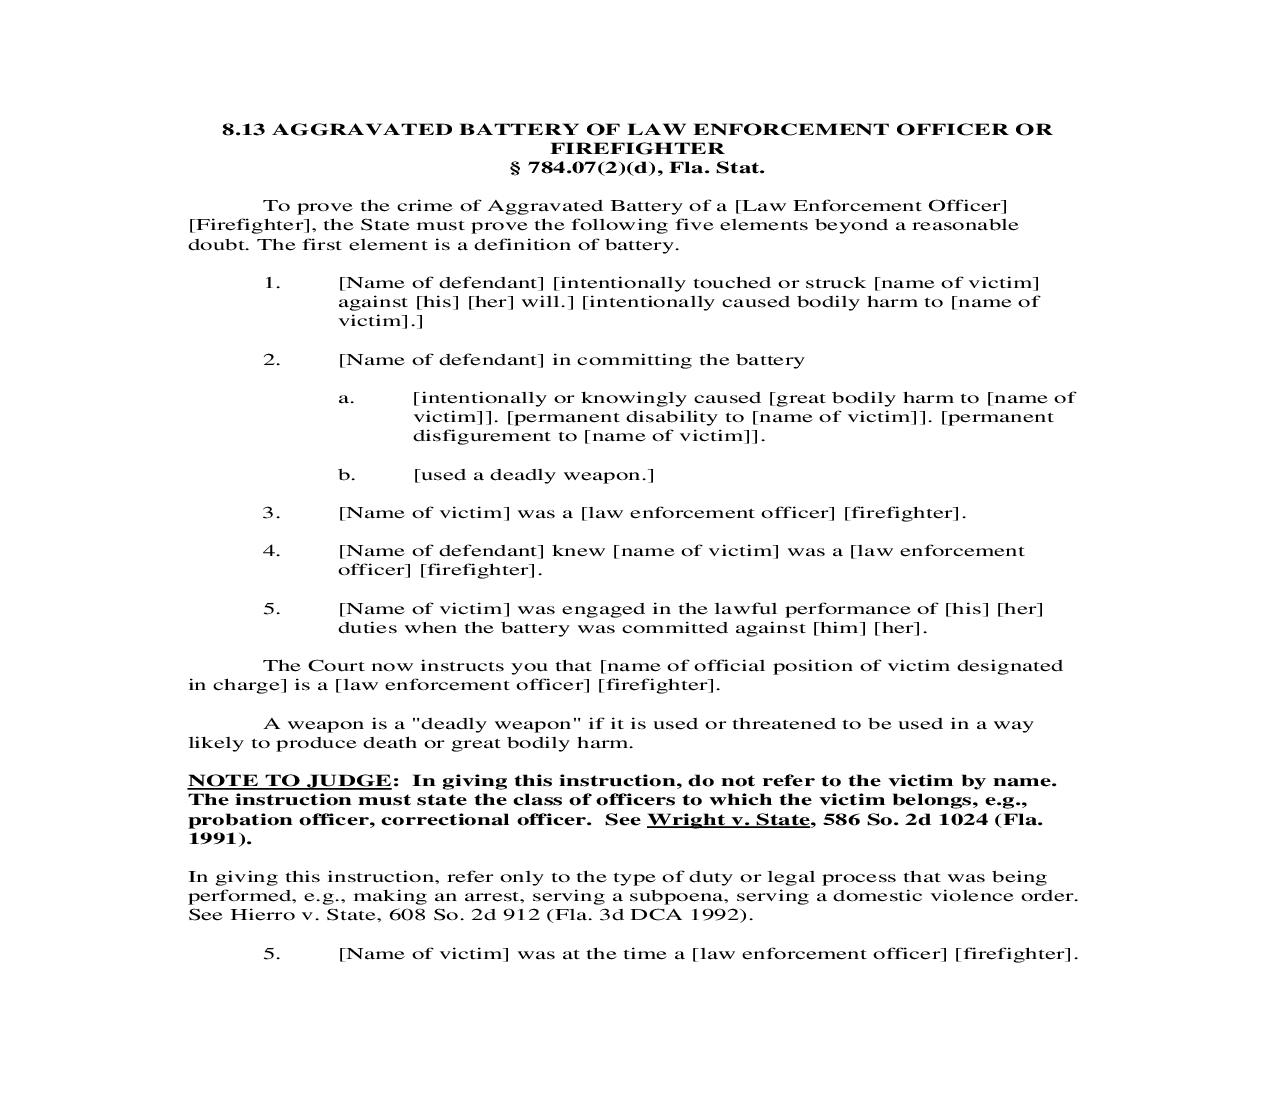 8.13. Aggravated Battery Of Law Enforcement Officer Or Firefighter   Pdf Doc Docx   Florida_JI